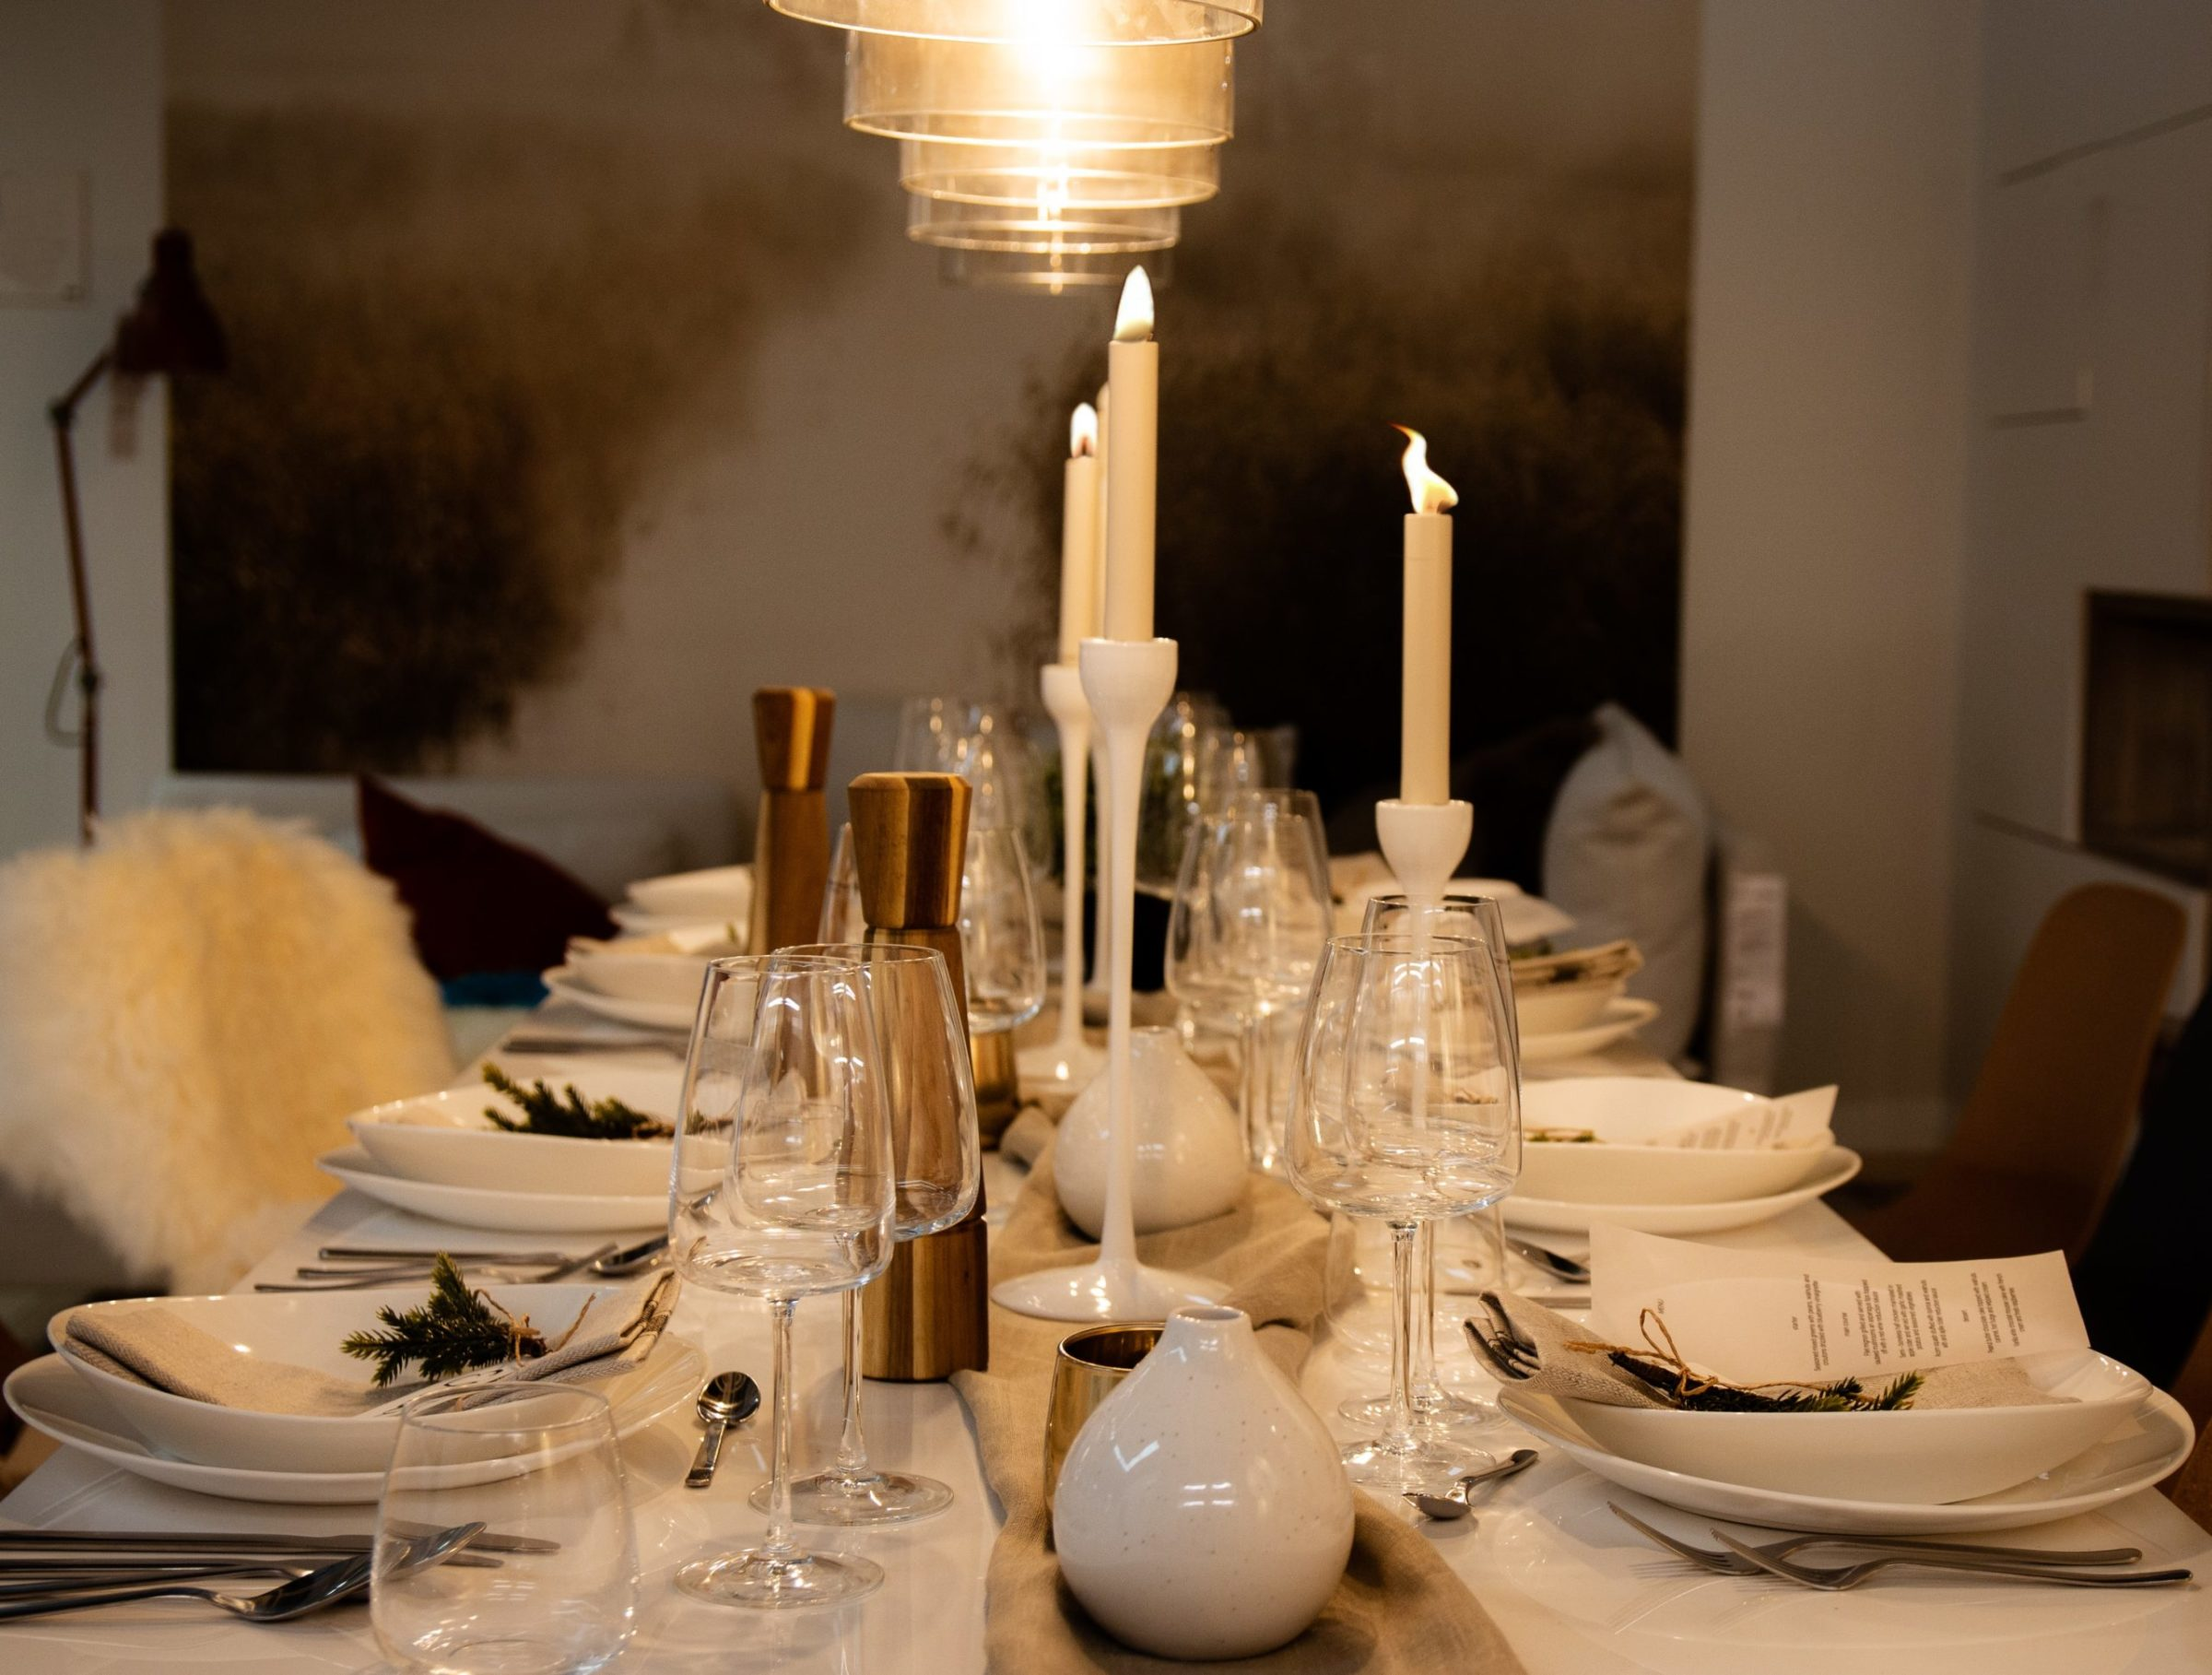 Christmas party private dining catering bristol bath somerset